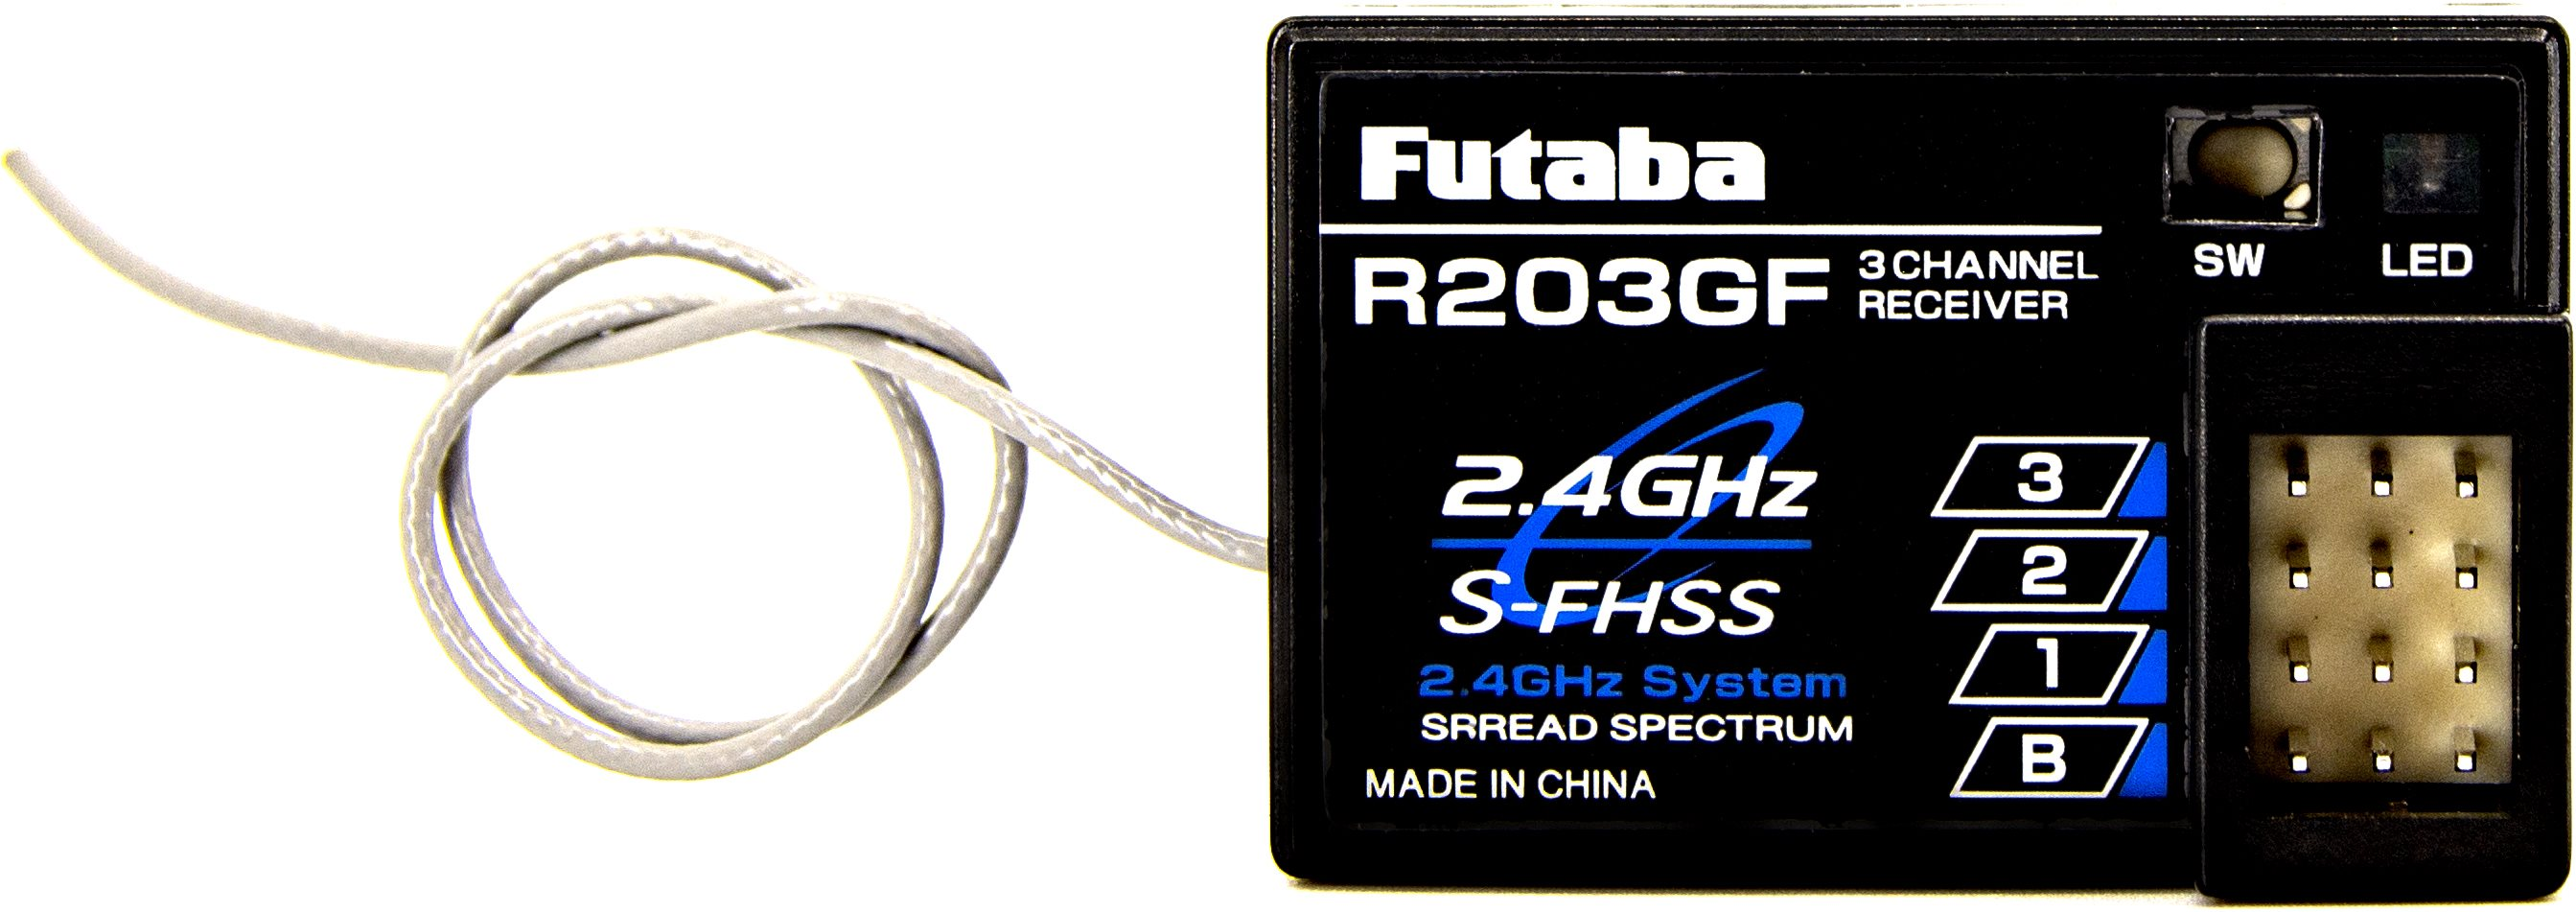 Futaba R203gf 2.4Ghz S-Fhss 3-Channel Receiver